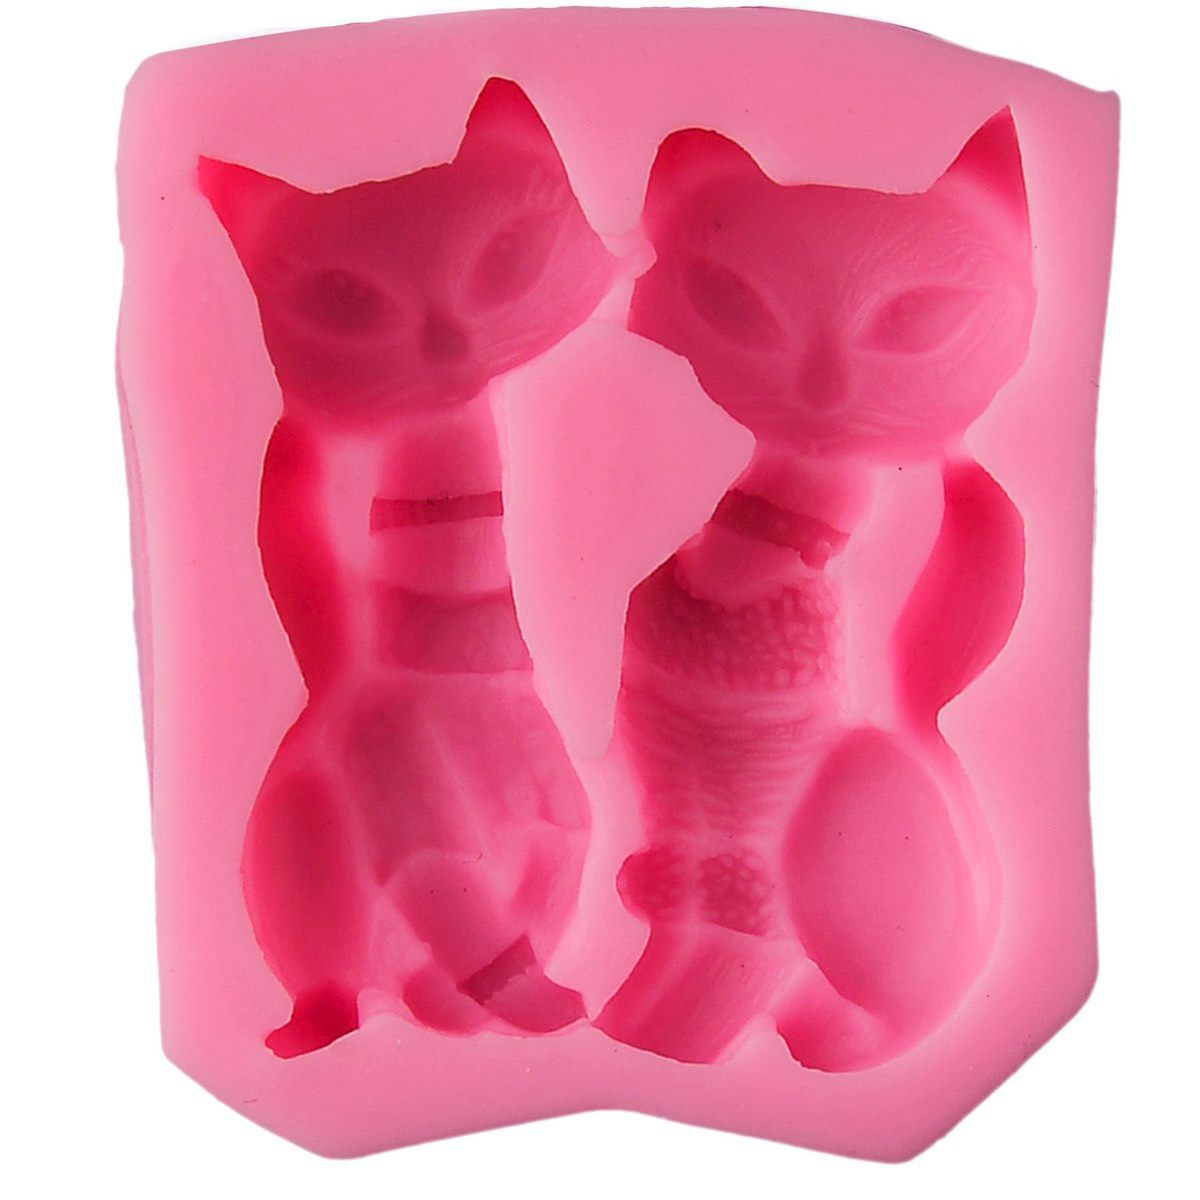 Resin Silicone Mould - Couple Cat (6x5x1.5 cm)